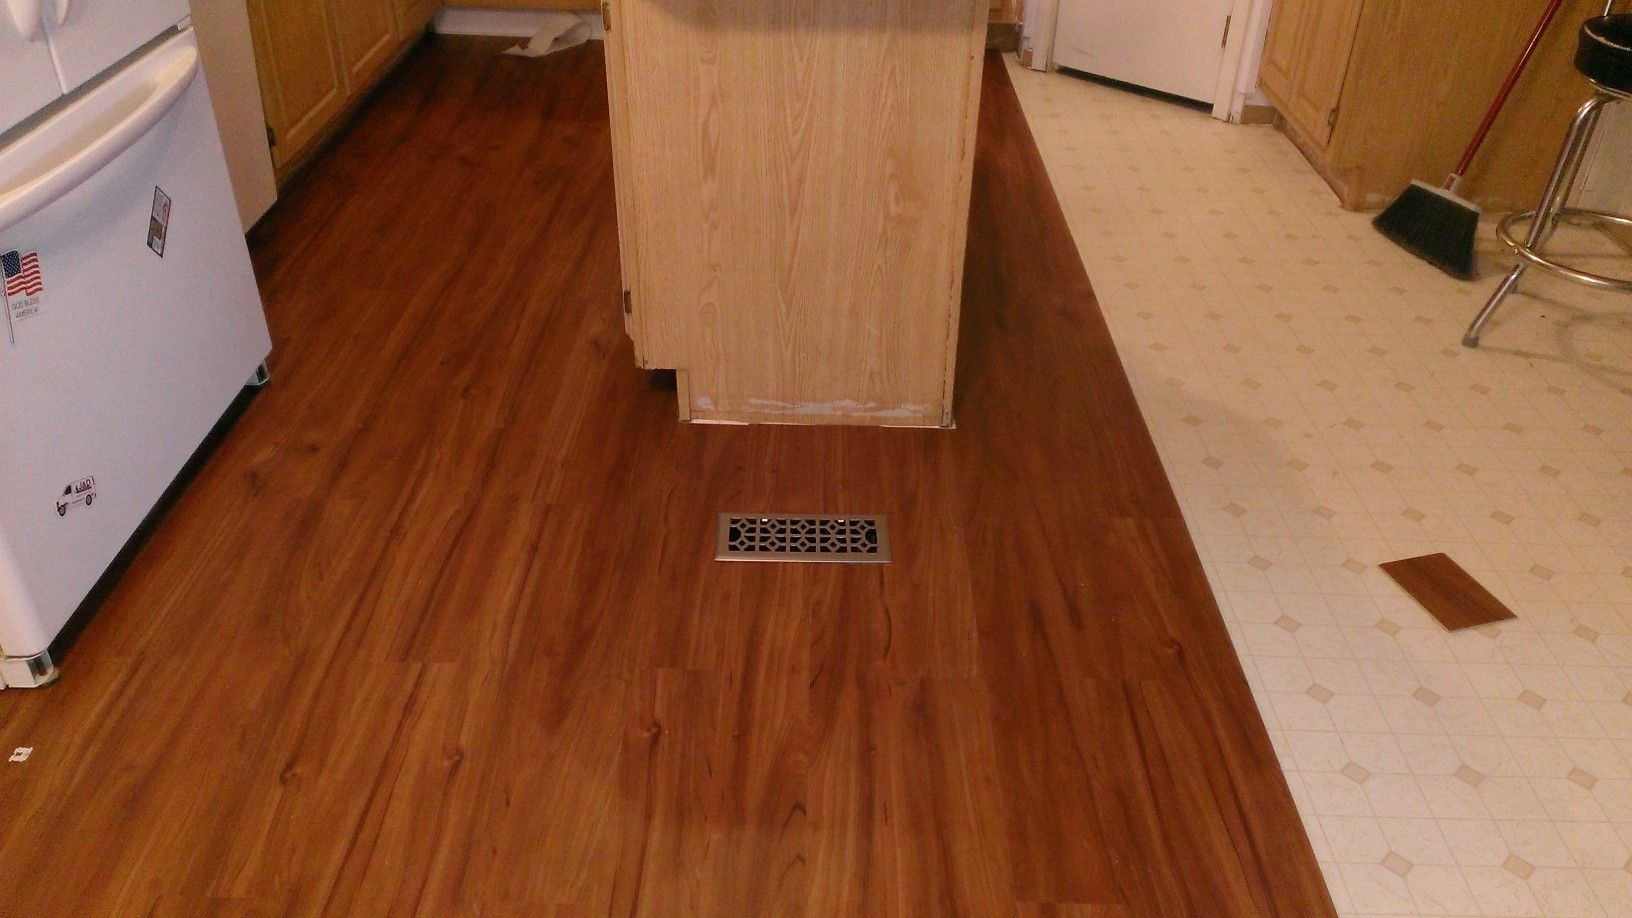 Just Finished Installing Some Lowe S Smart Core Flooring By Natural Floors This Is A Vinyl Product That Is Fairly Ea Natural Flooring Flooring Floating Floor